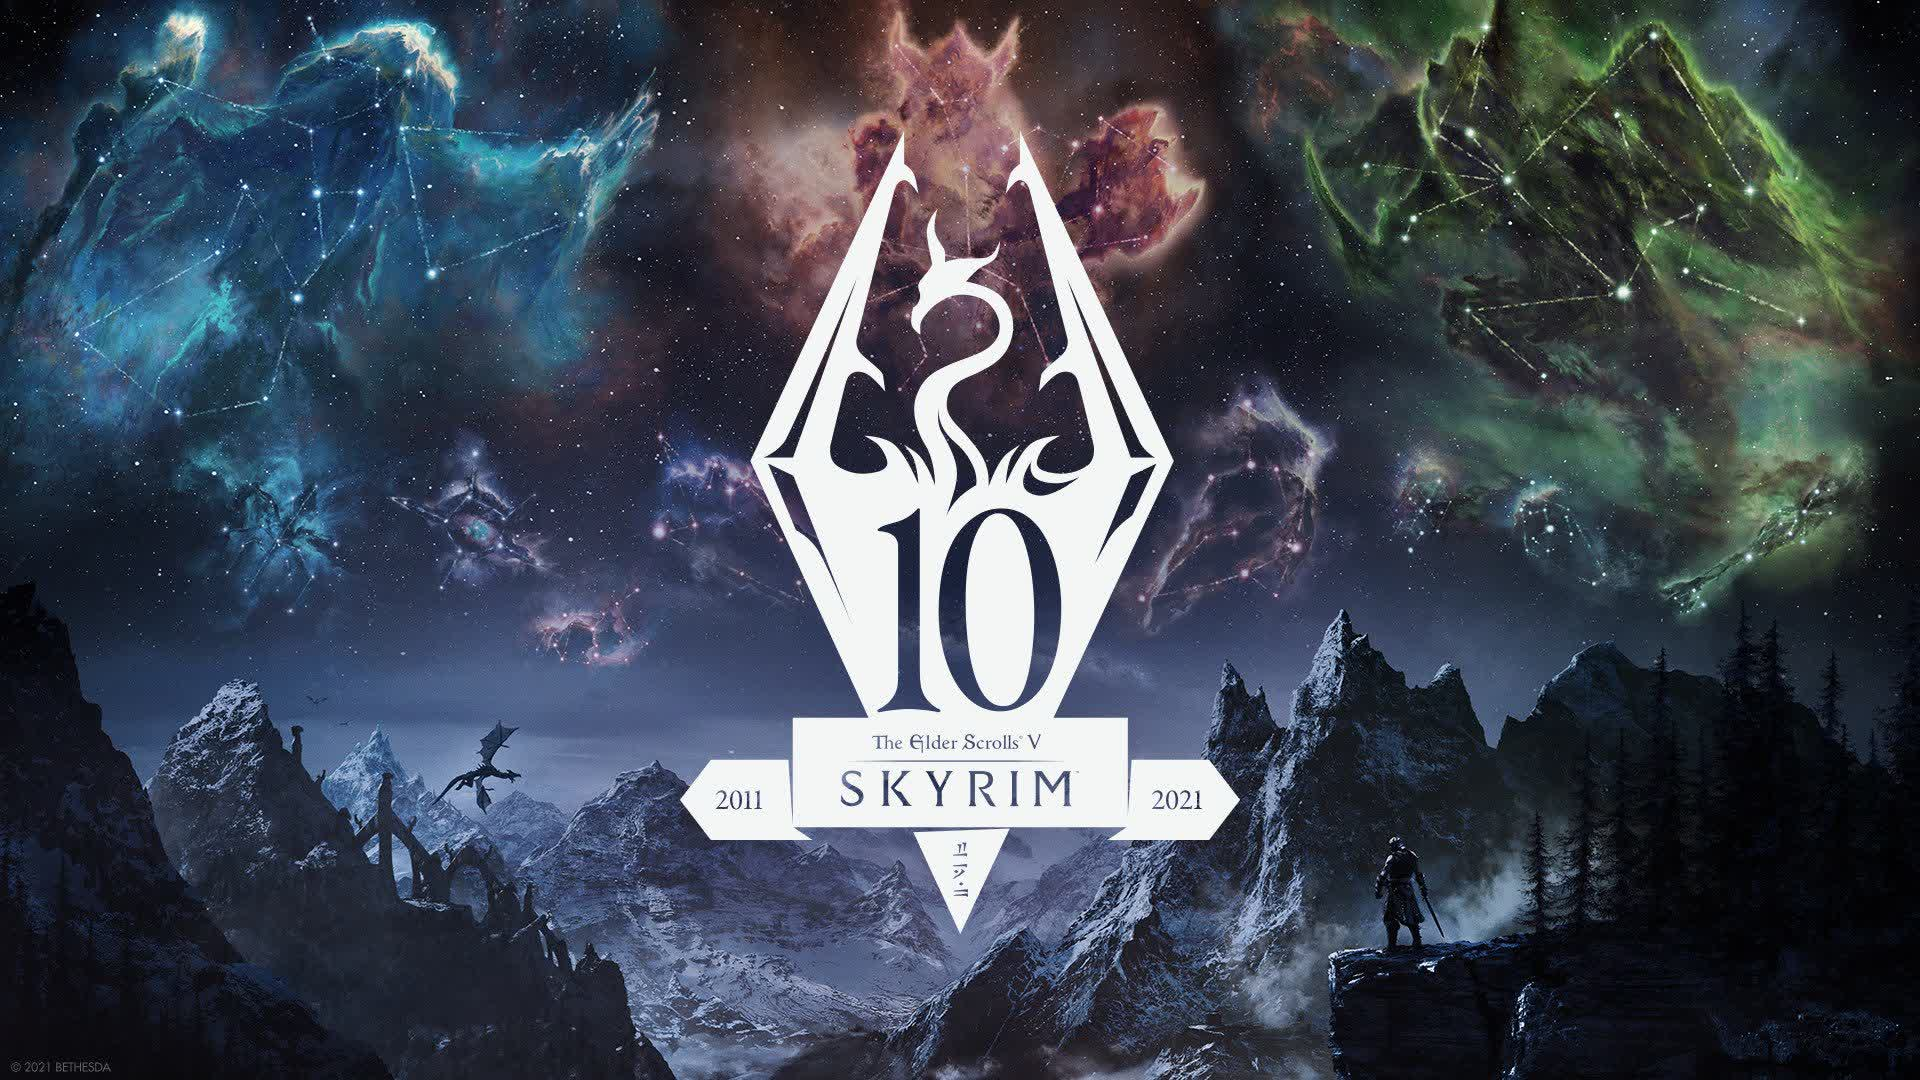 Bethesda announces a 10th anniversary edition of 'Skyrim' set to launch in November